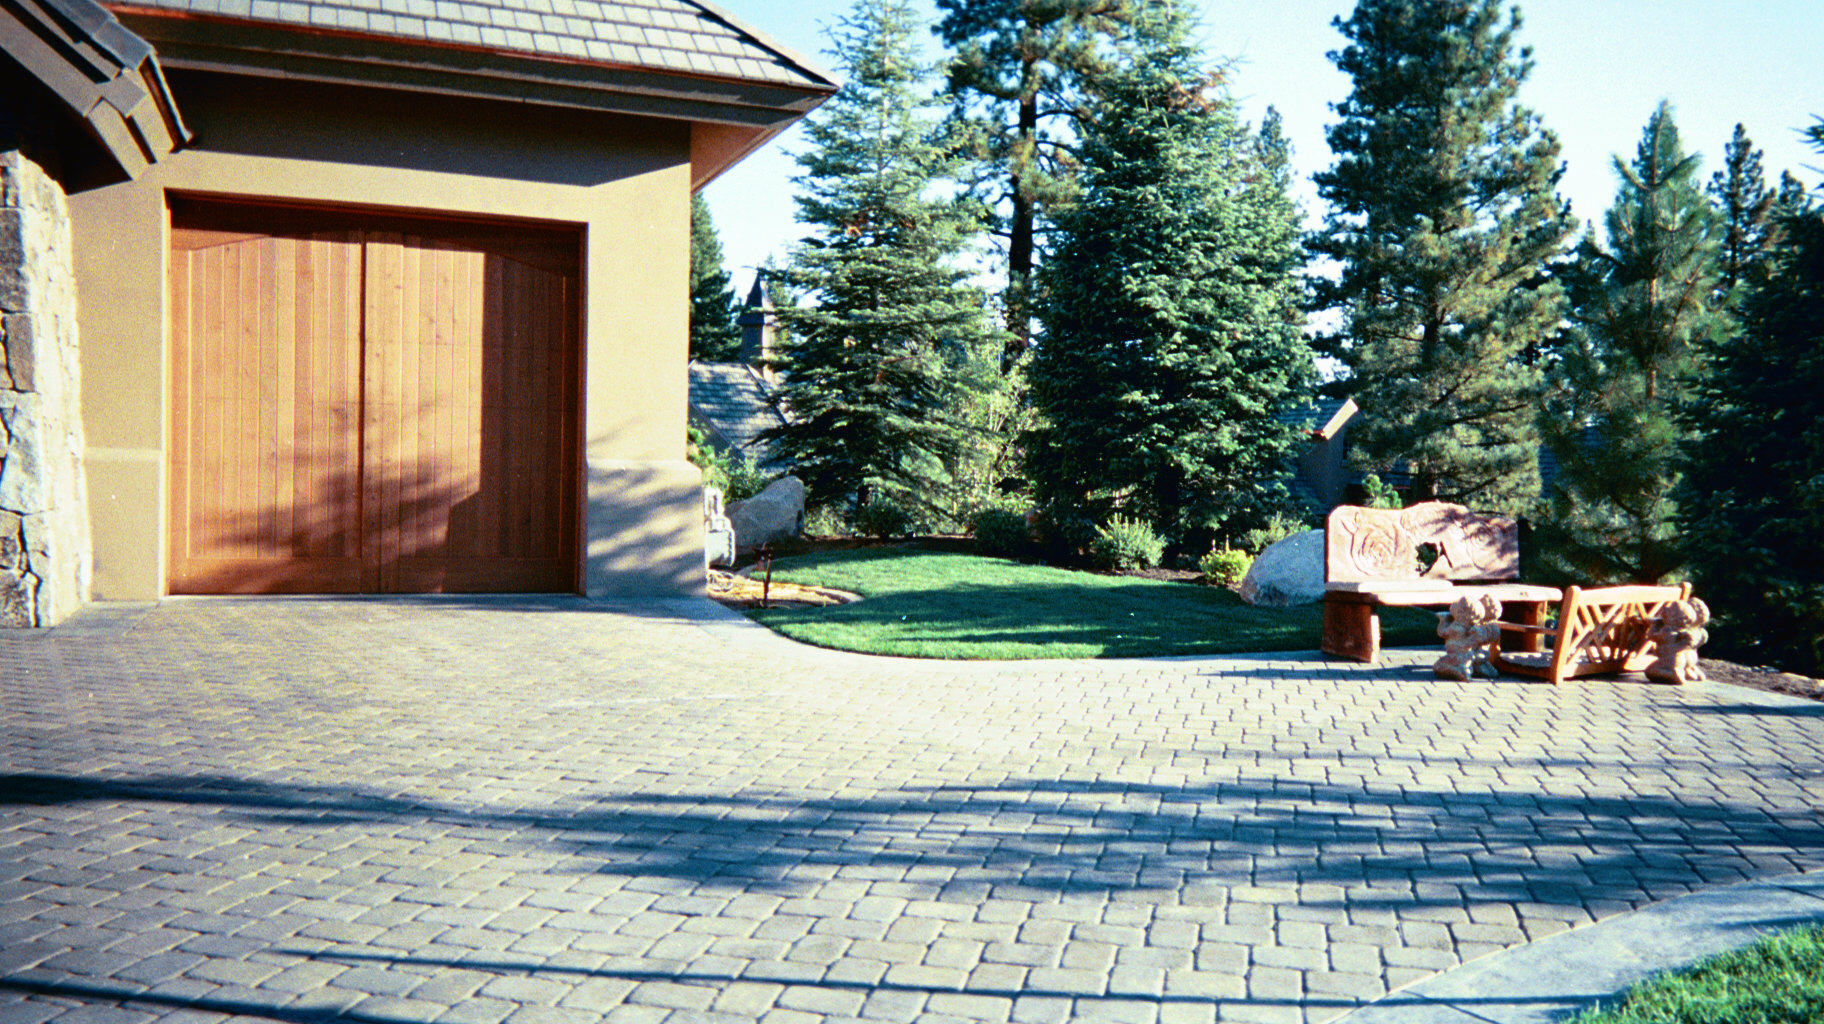 Types Of Driveways And Their Relevant Features